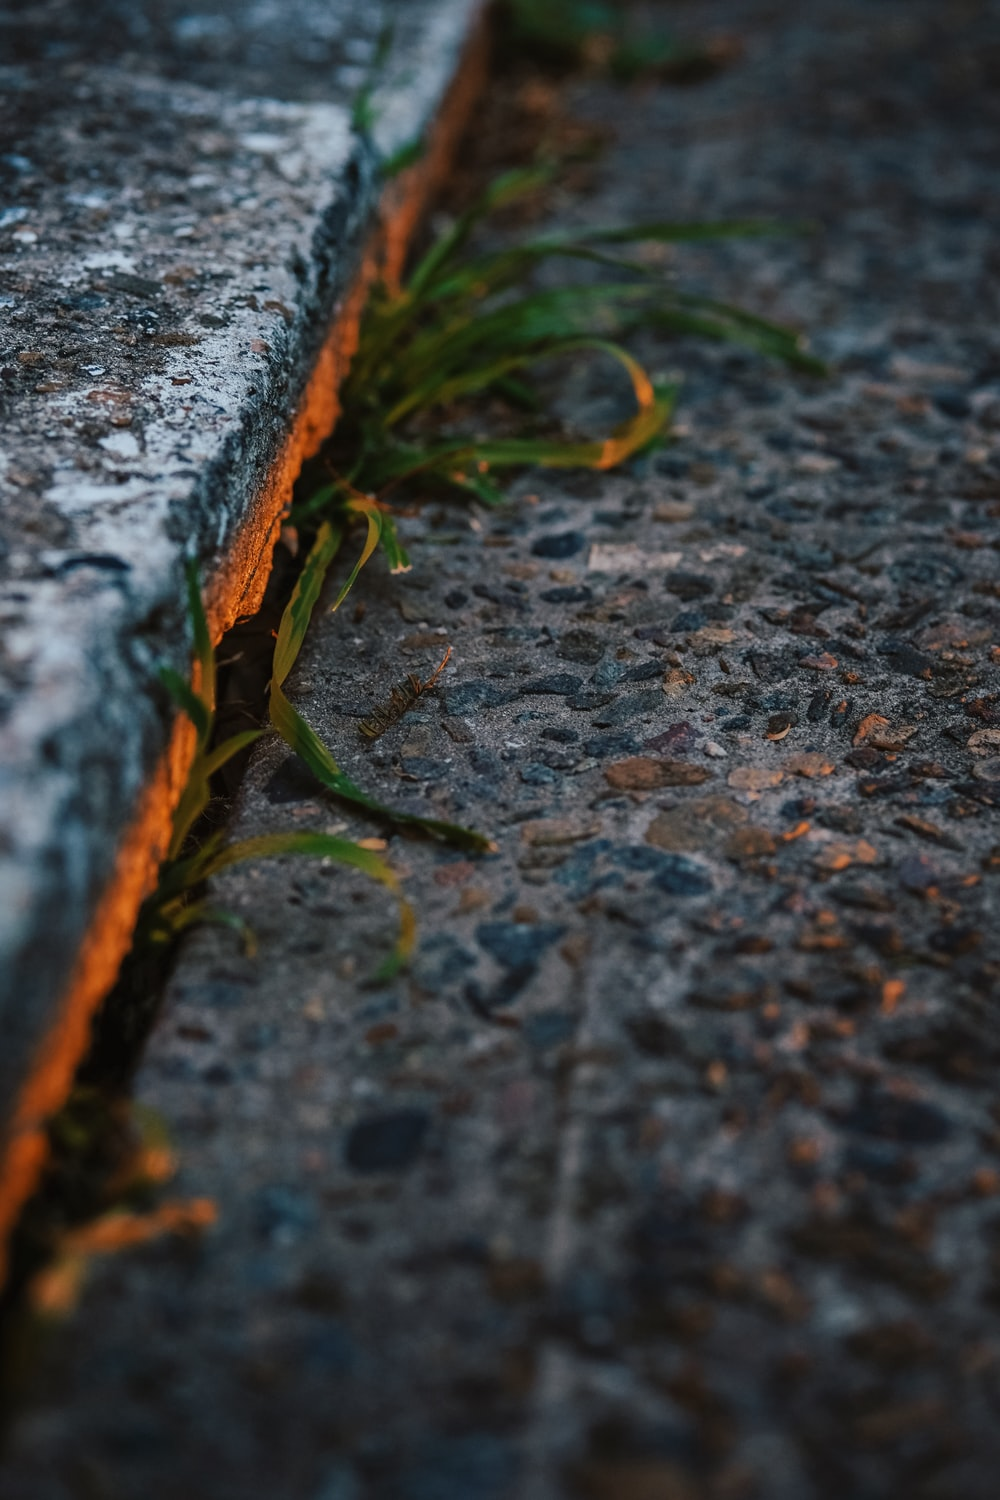 green plant in concrete surface